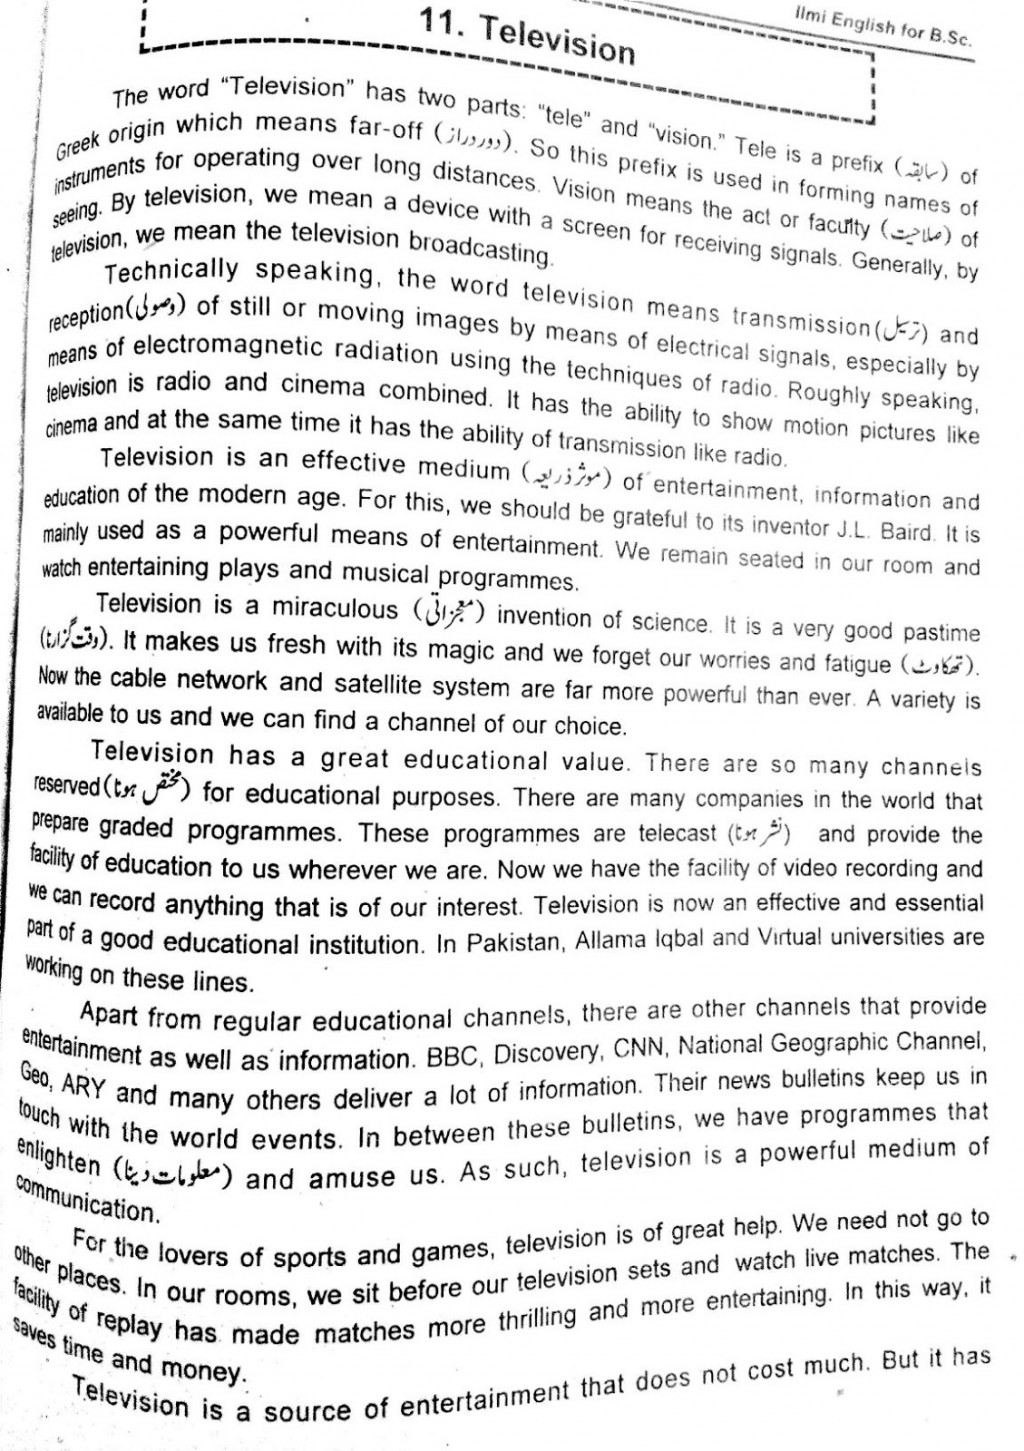 essay on television for class 7